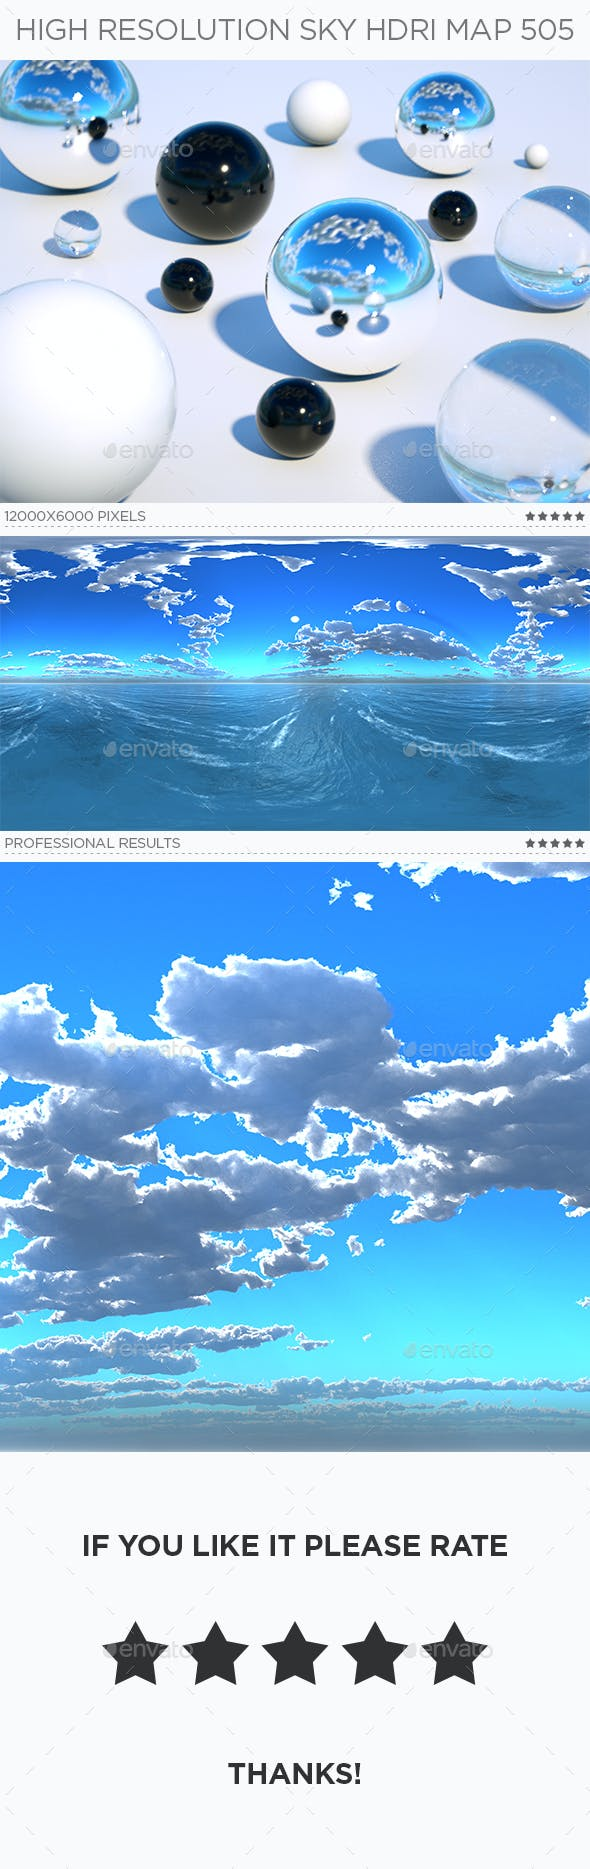 High Resolution Sky HDRi Map 505 - 3DOcean Item for Sale